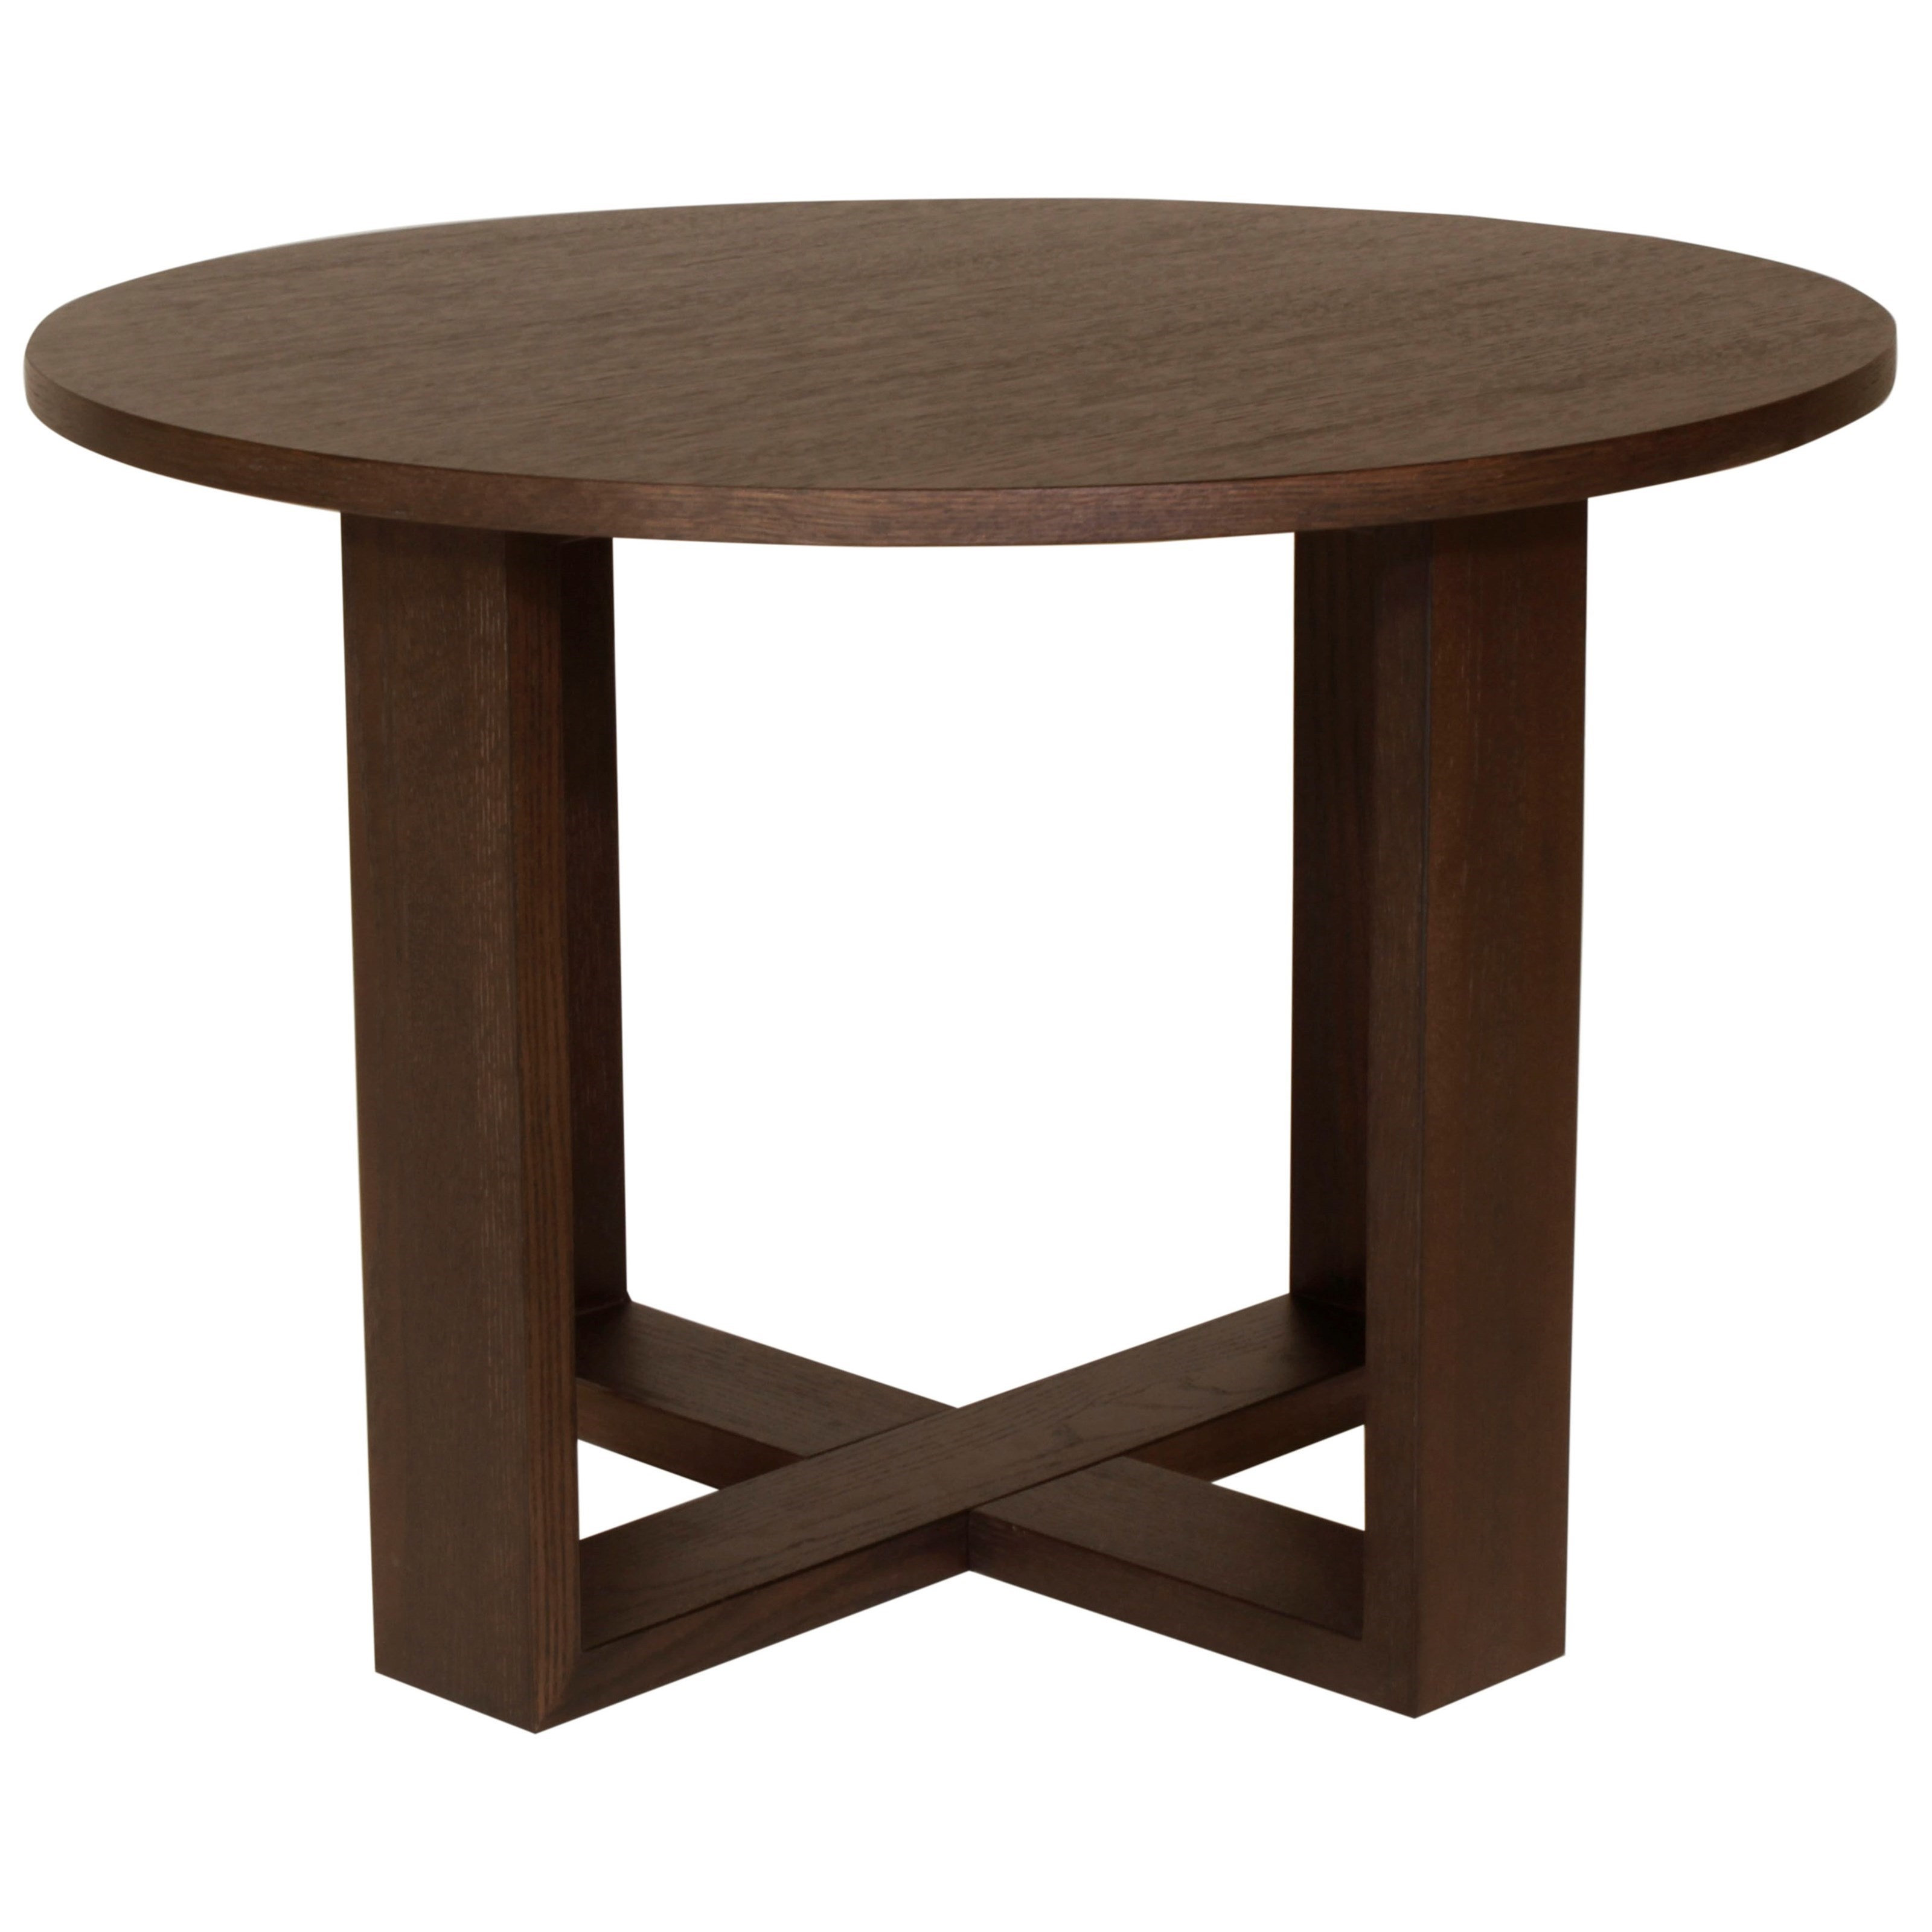 Amarone End Table by Natuzzi Editions at Red Knot